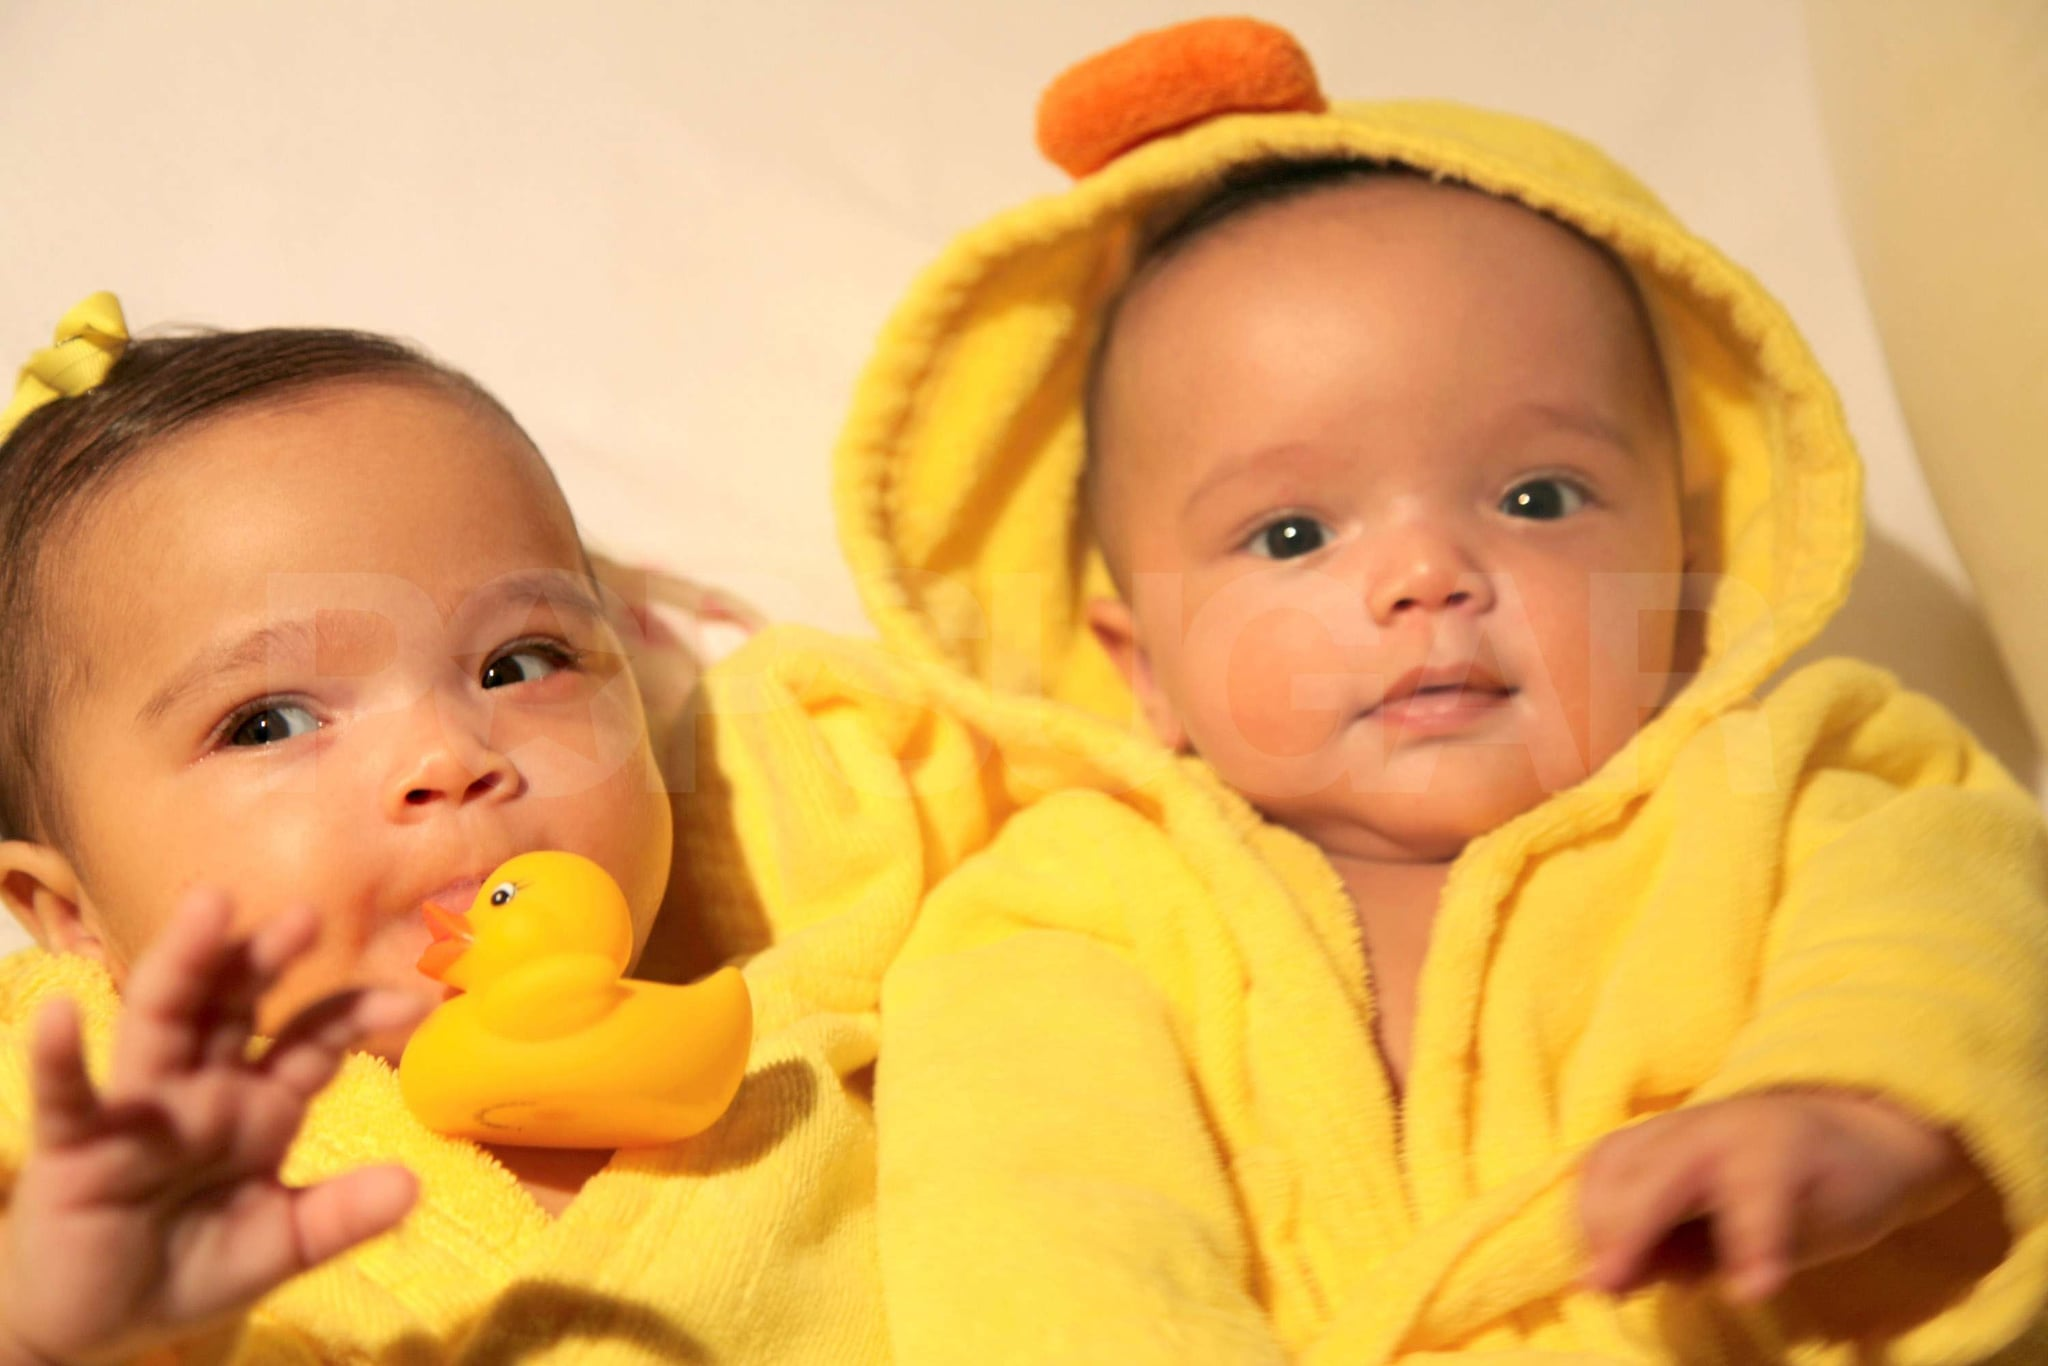 The twins Moroccan and Monroe Cannon wore matching ducky robes.